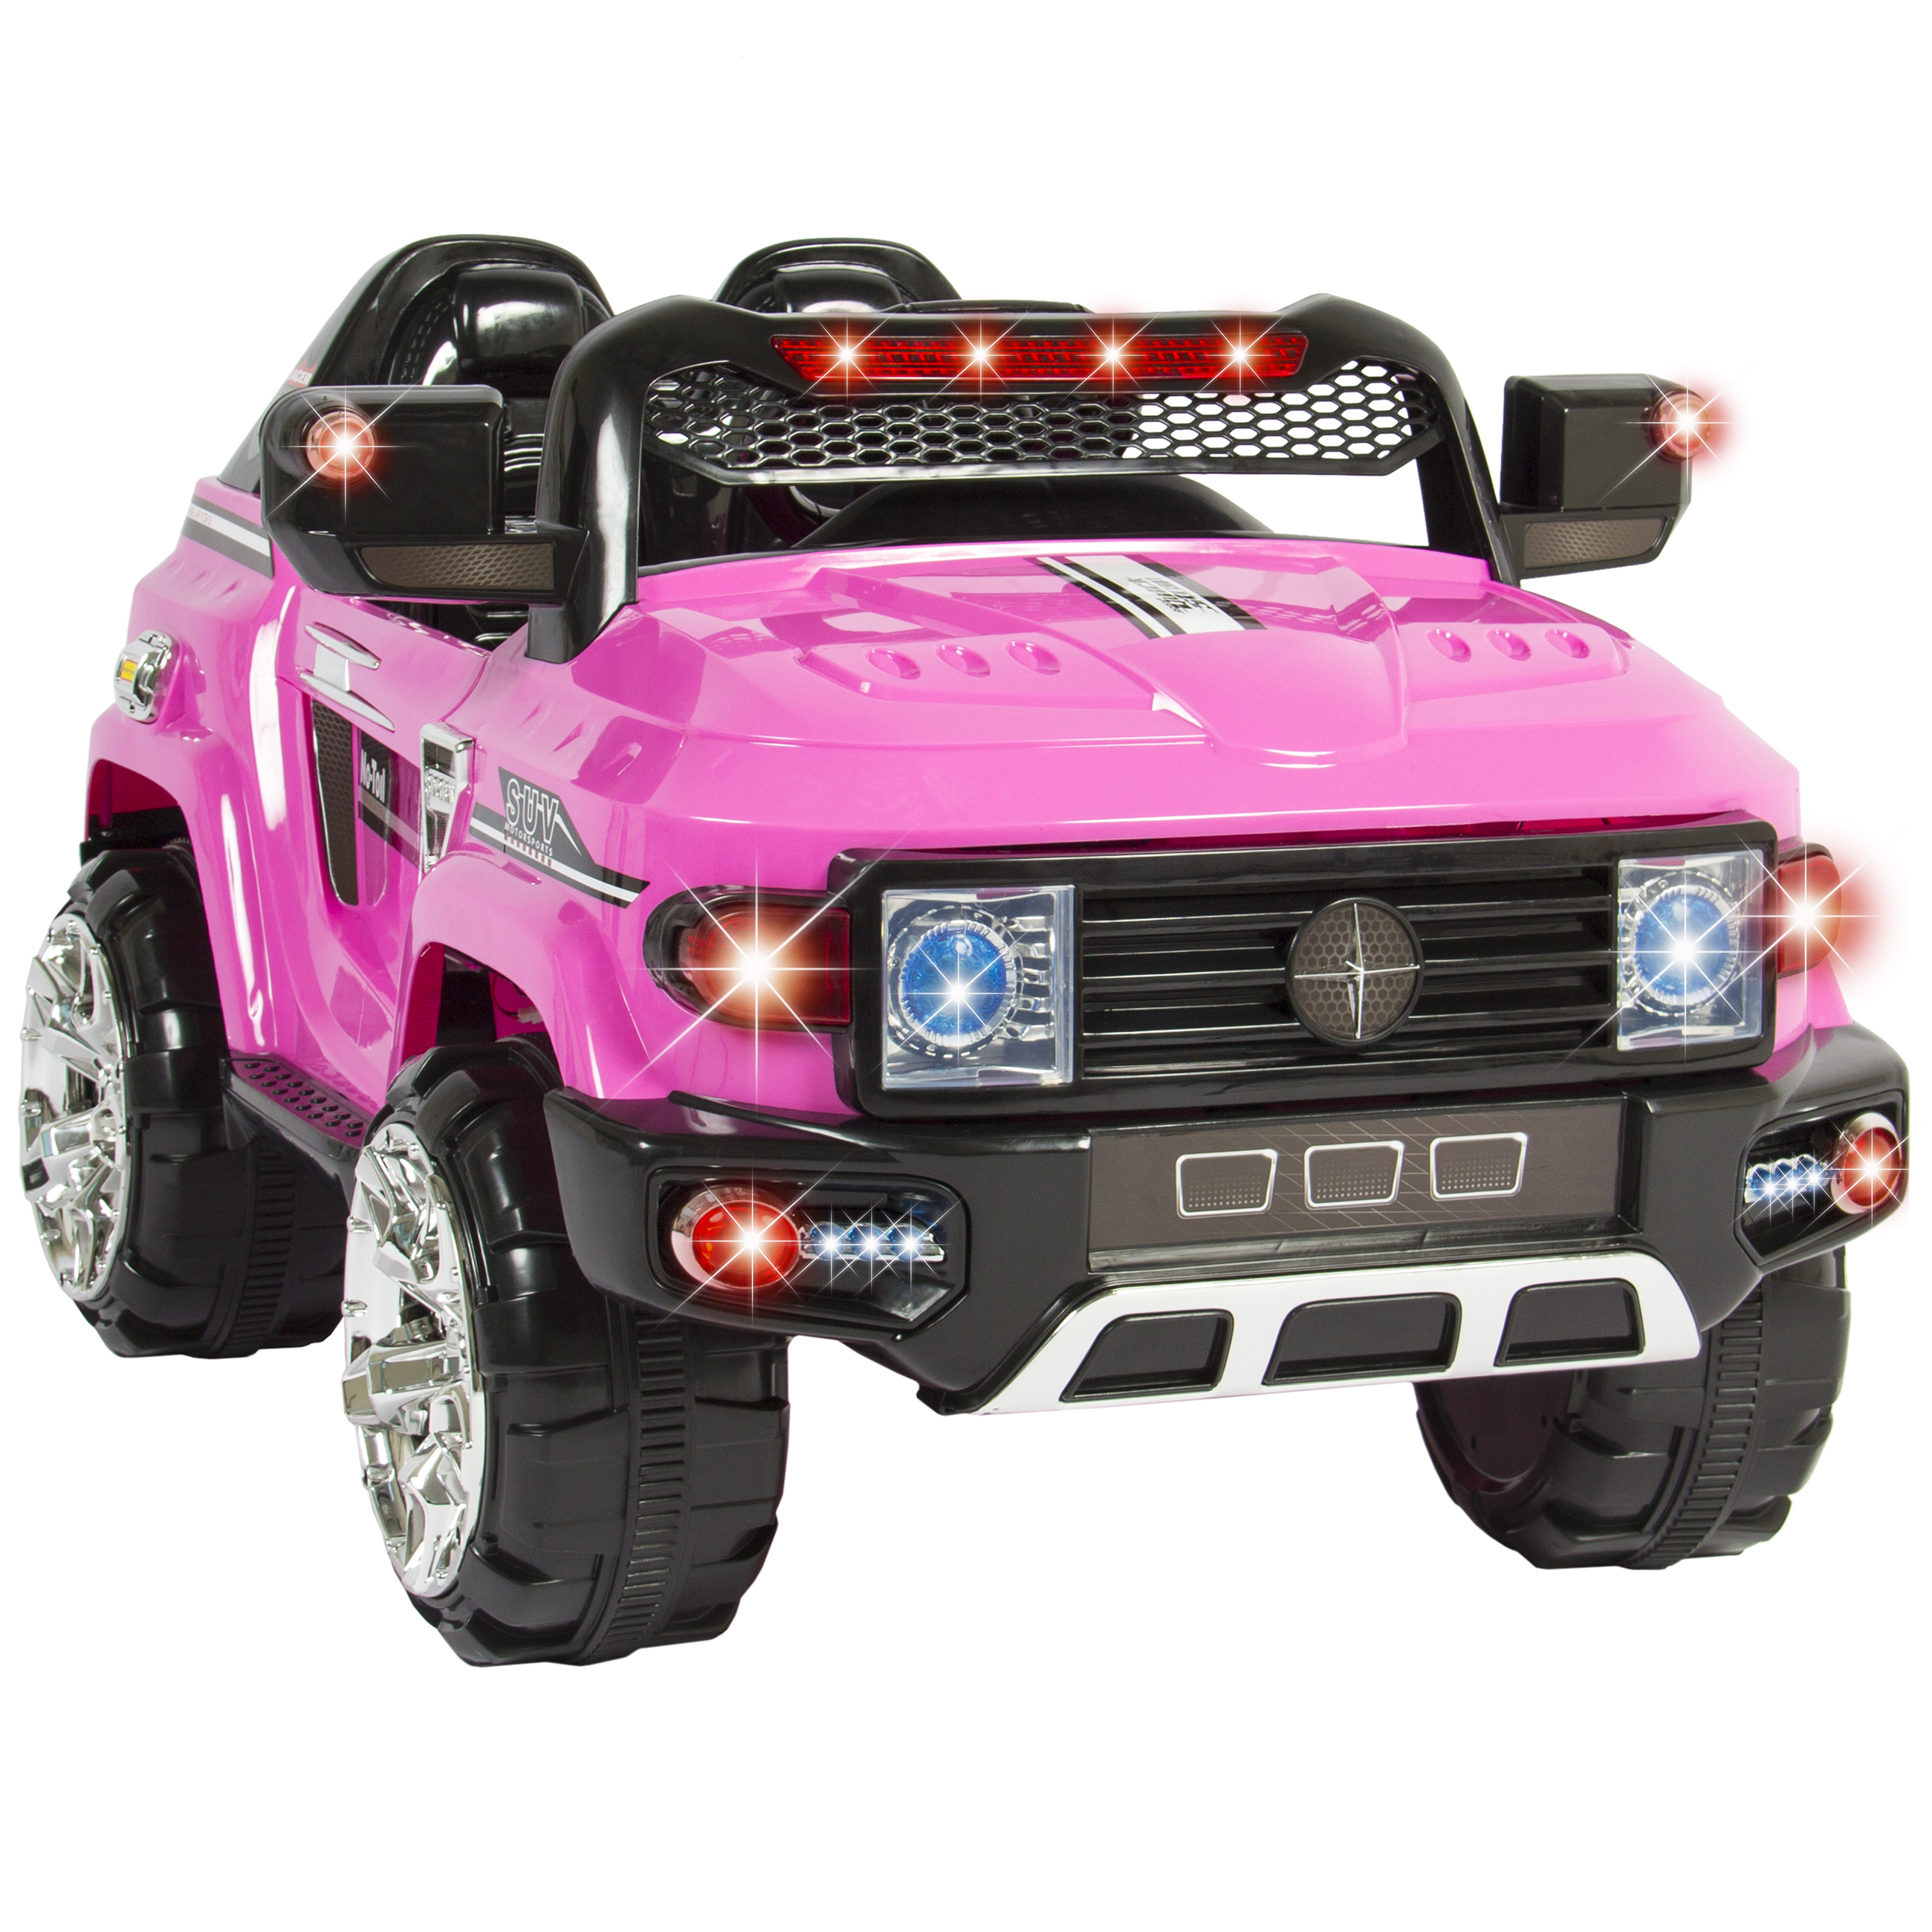 Girls Motorized Car Inspirational Ride On toy Car Battery Operated Classic Sports Car with Remote